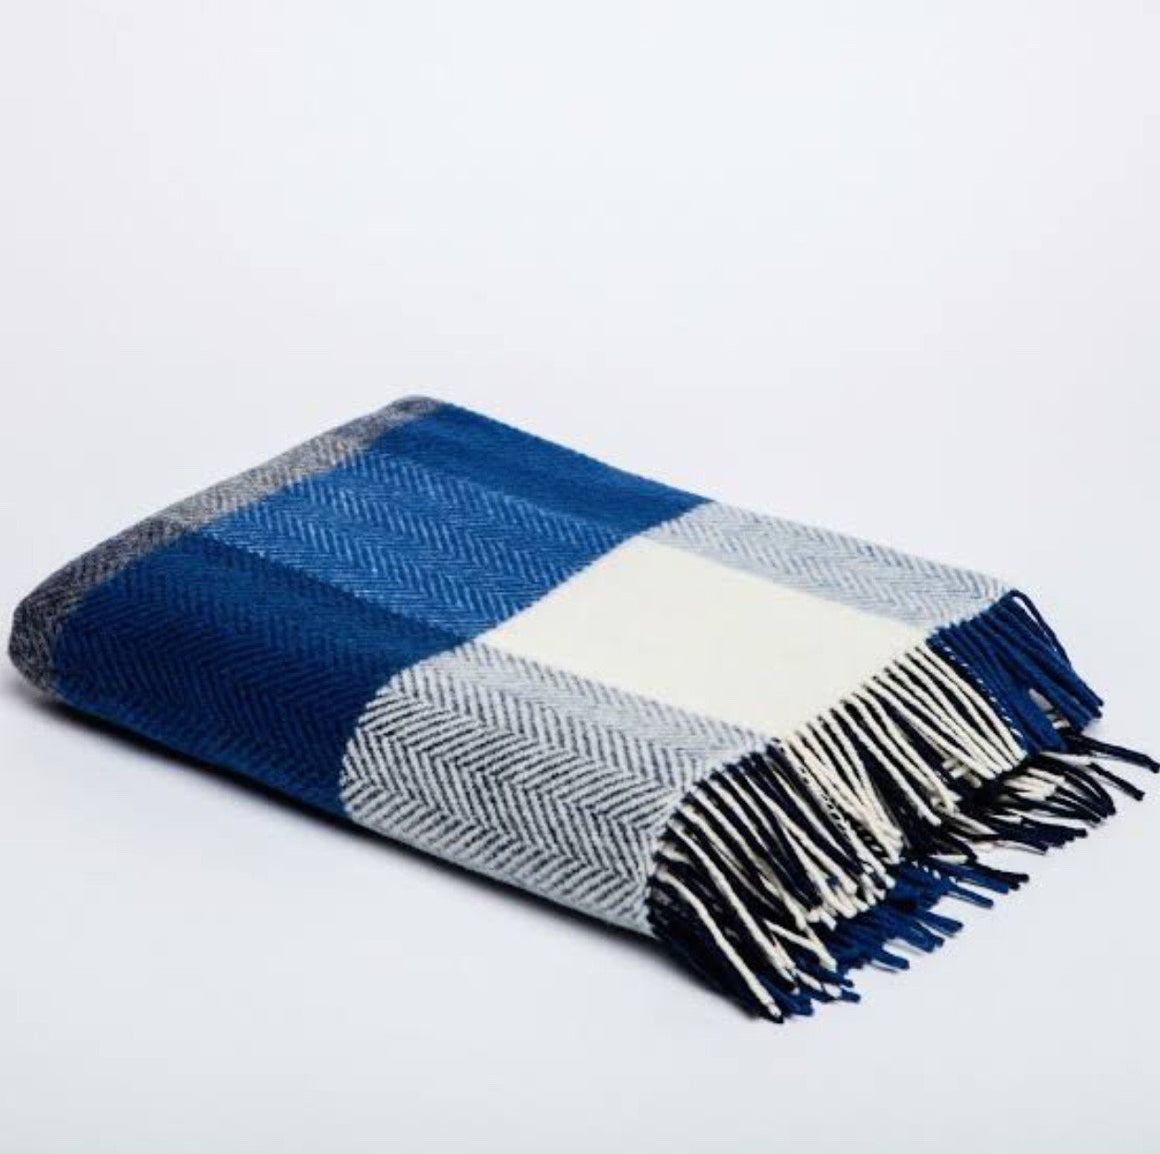 Merino Cashmere Throw - Blue, Demin + White Large Check